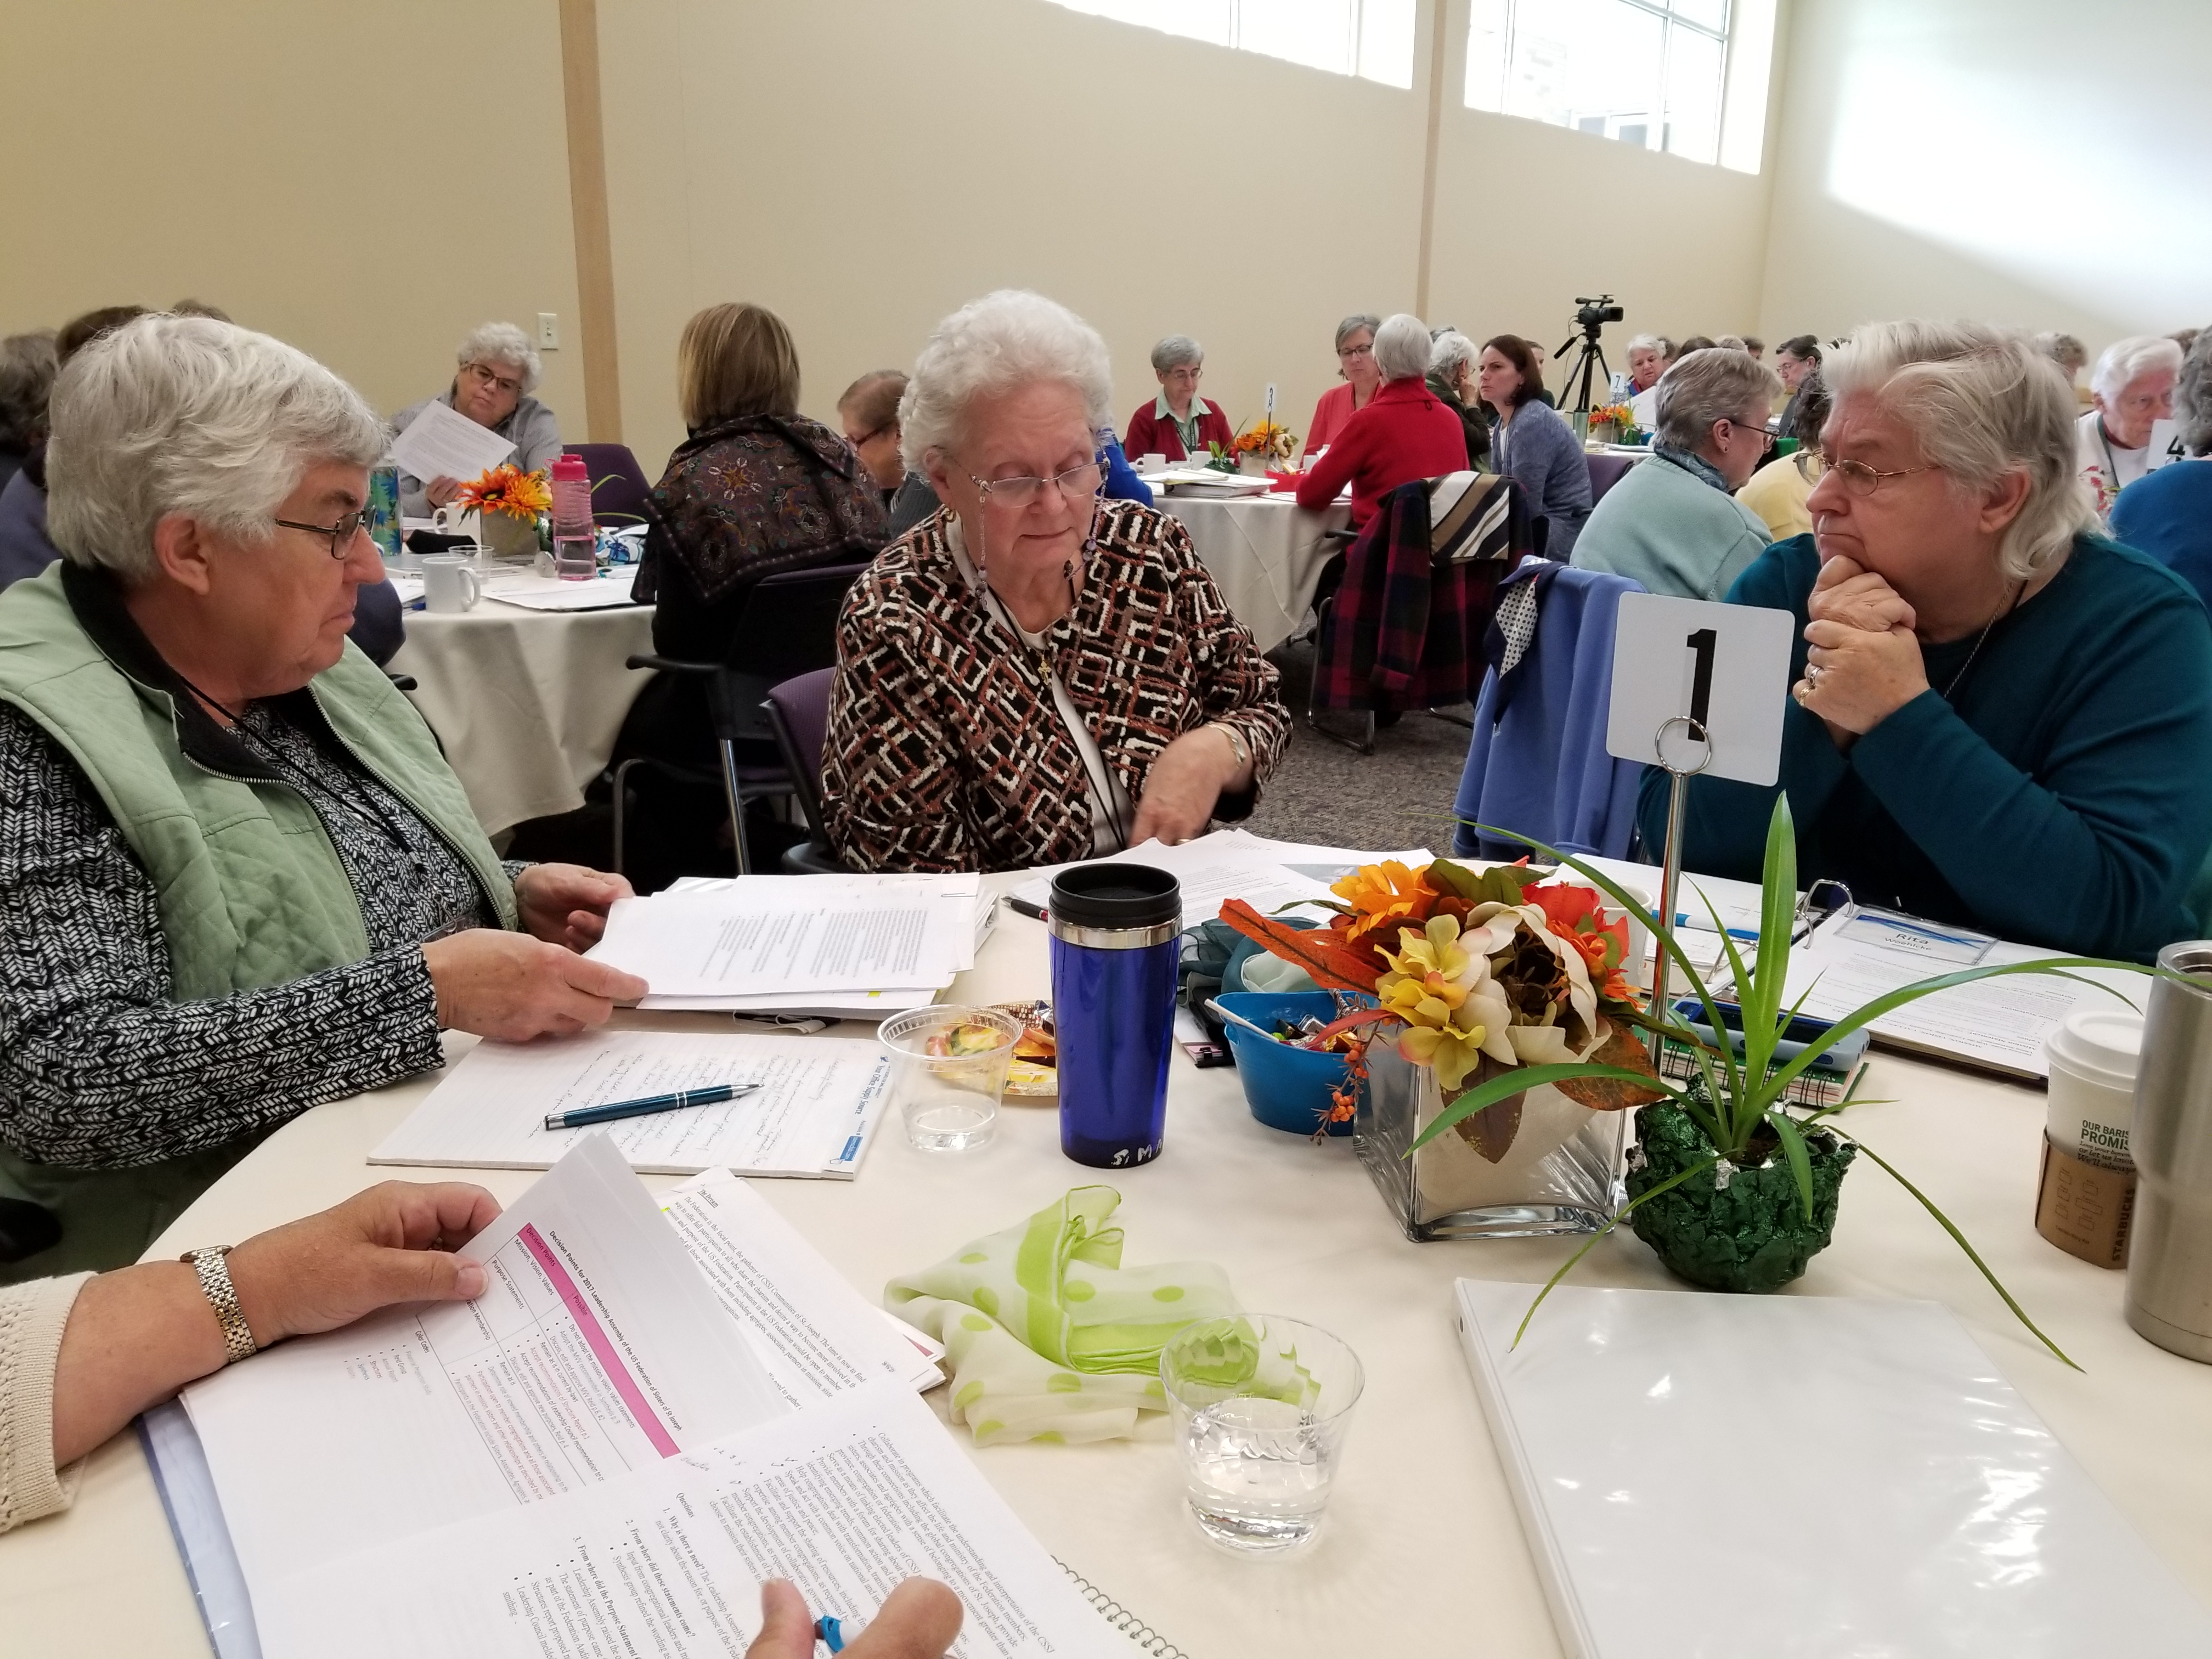 Associate director Sr. Rita Woehlcke left speaks with Srs. Mary Ann Mayer and Mary Anne Heenan at the Leadership Assembly